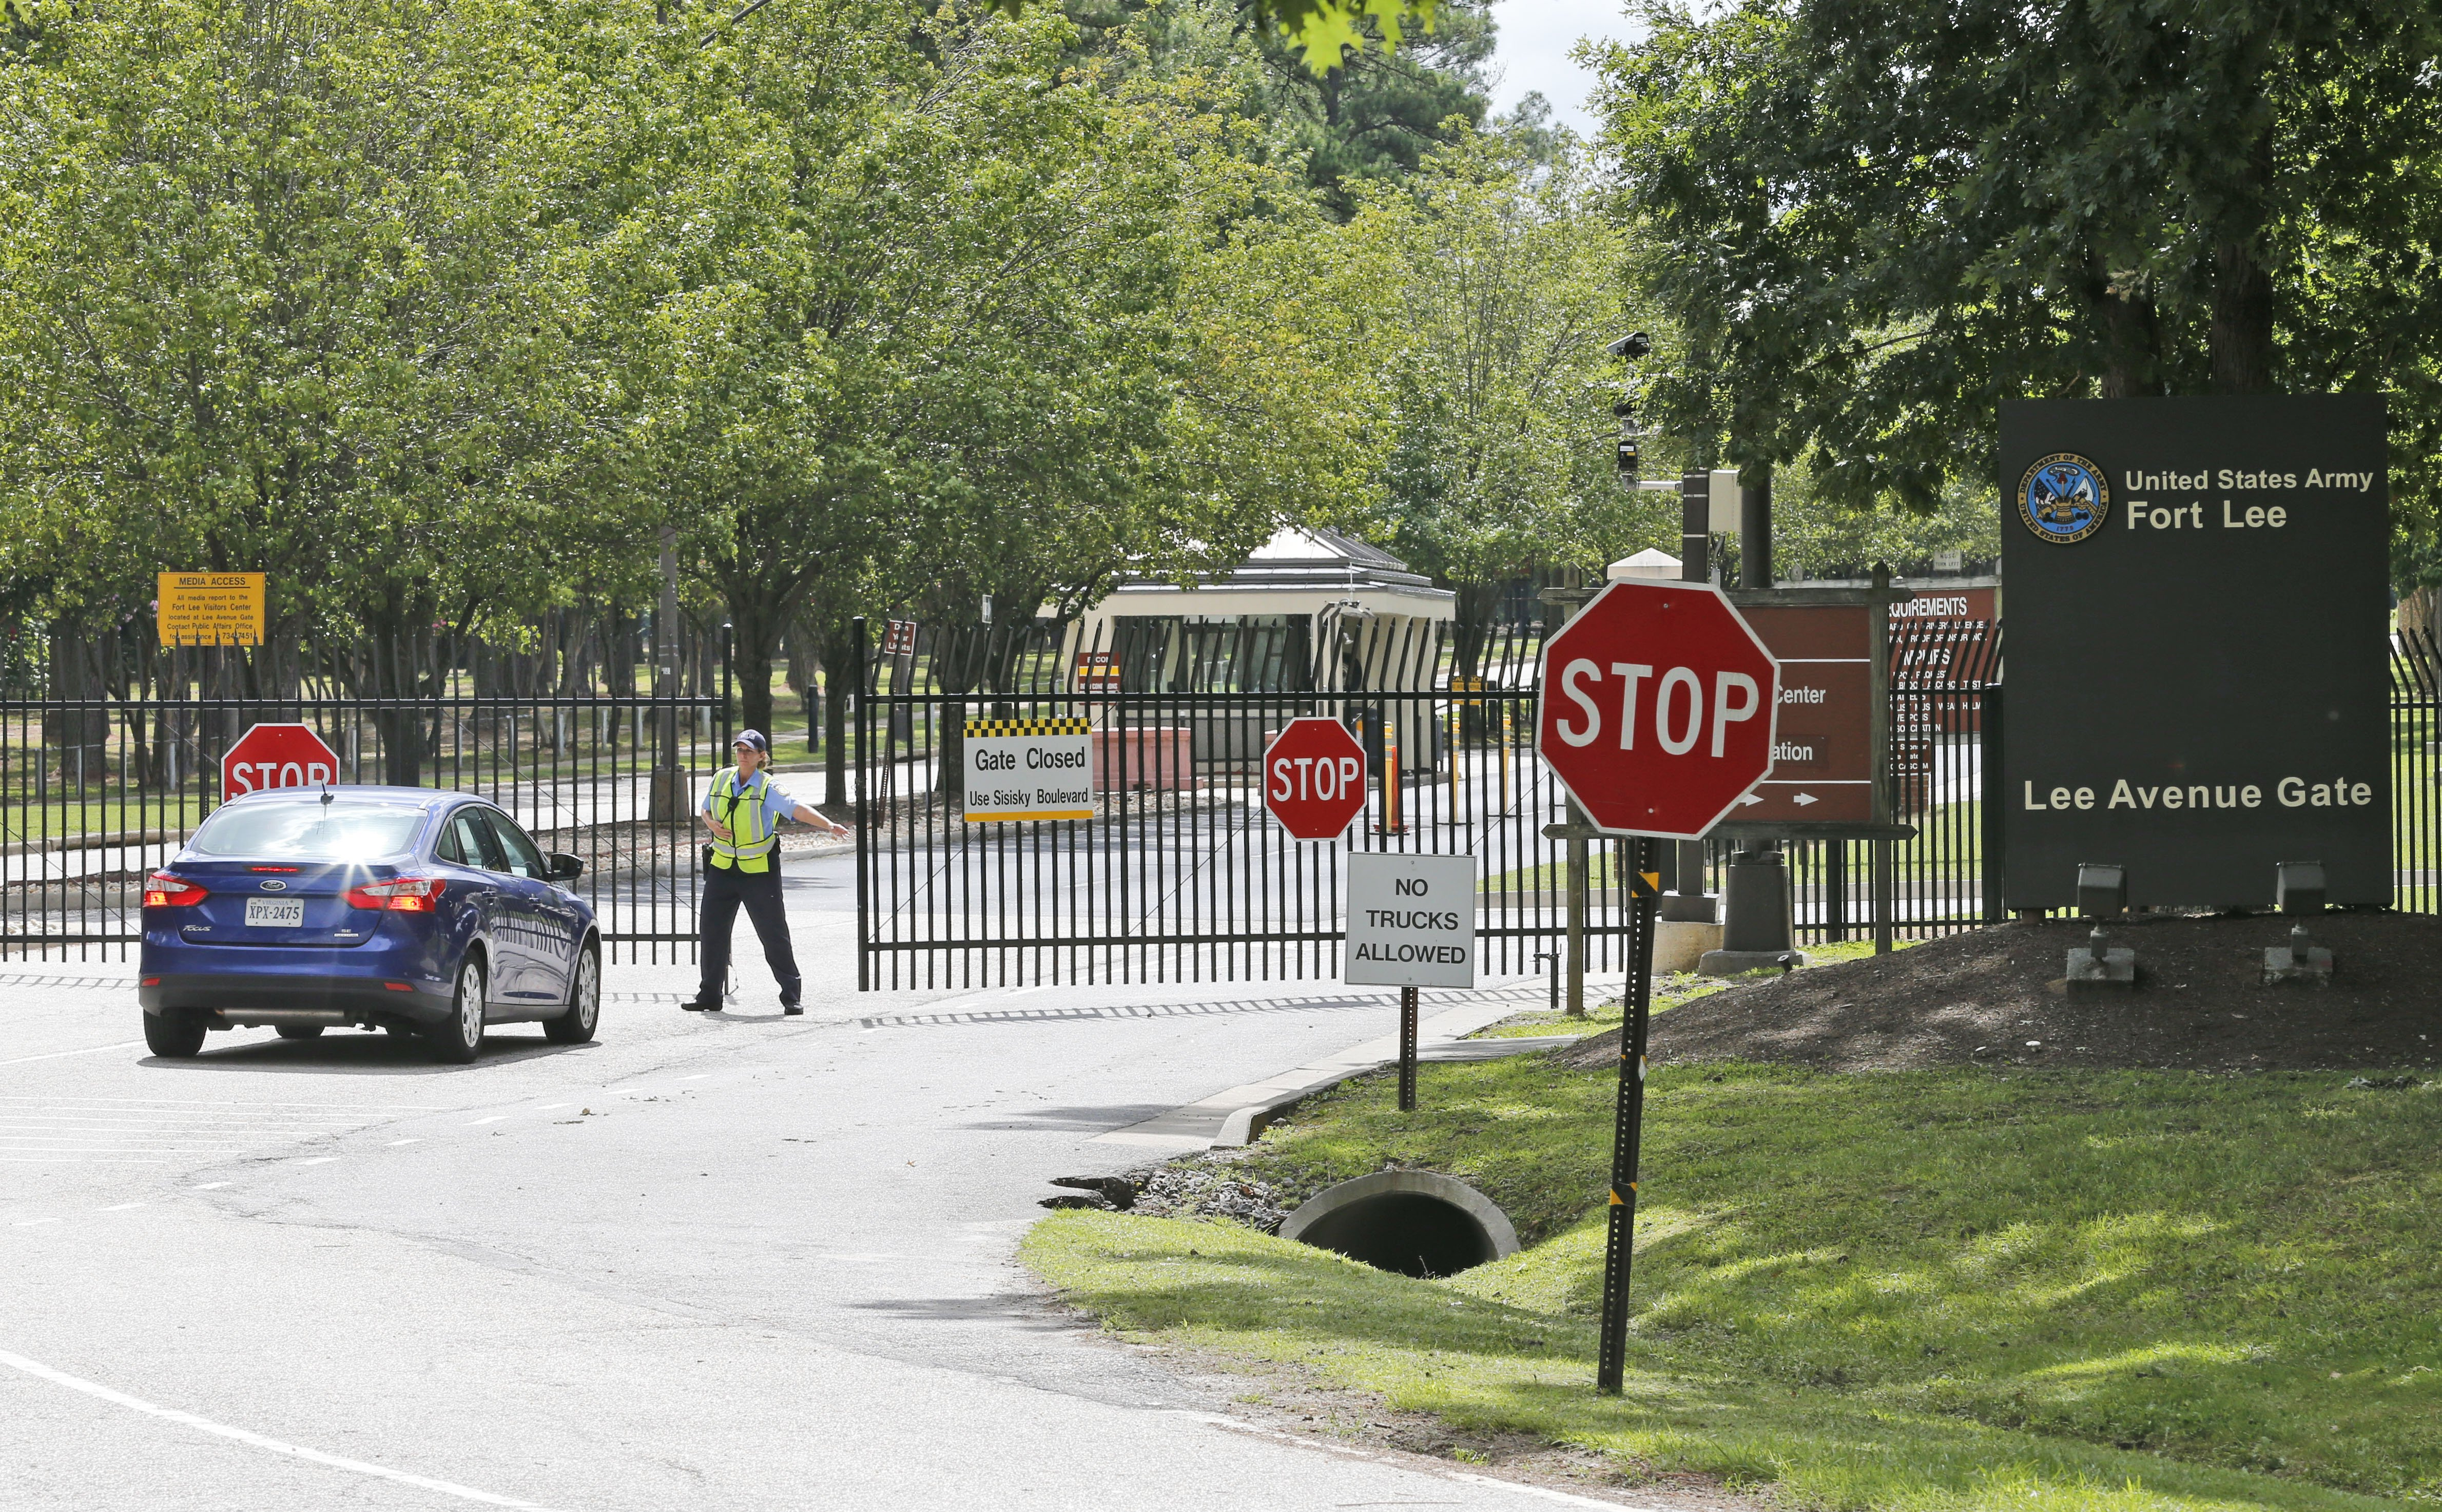 Security guards open a gate for motorist at the visitor entrance to Fort Lee, Va. on Aug. 25, 2014.